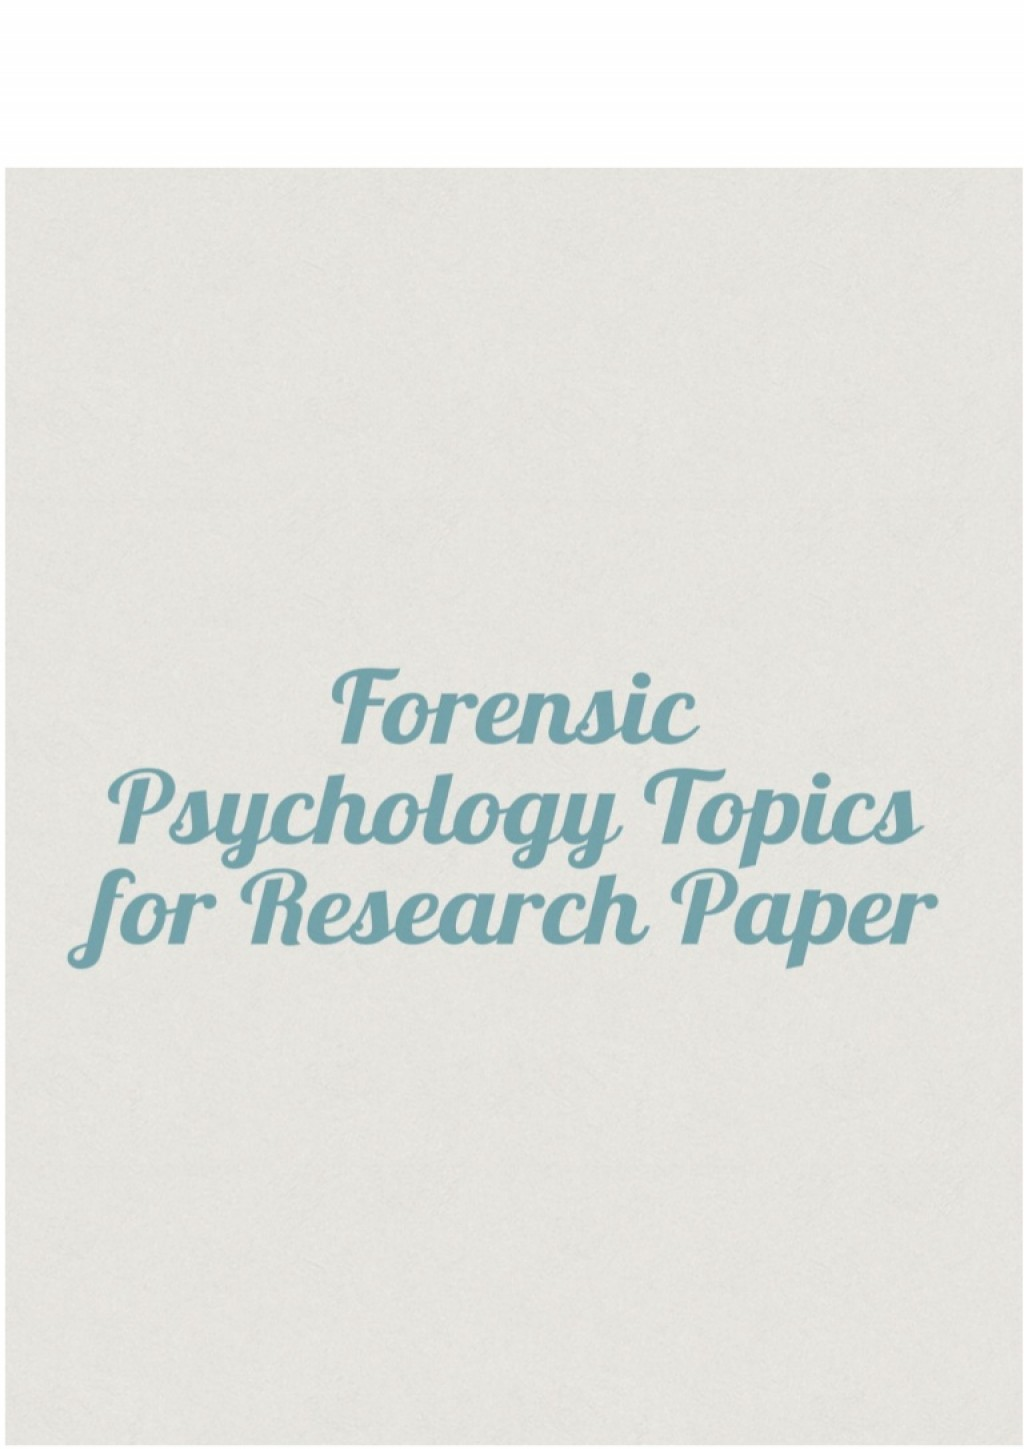 008 Psychology Topics For Research Paper Forensicpsychologytopicsforresearchpaper Thumbnail Wondrous Cultural Cognitive Papers Controversial Large